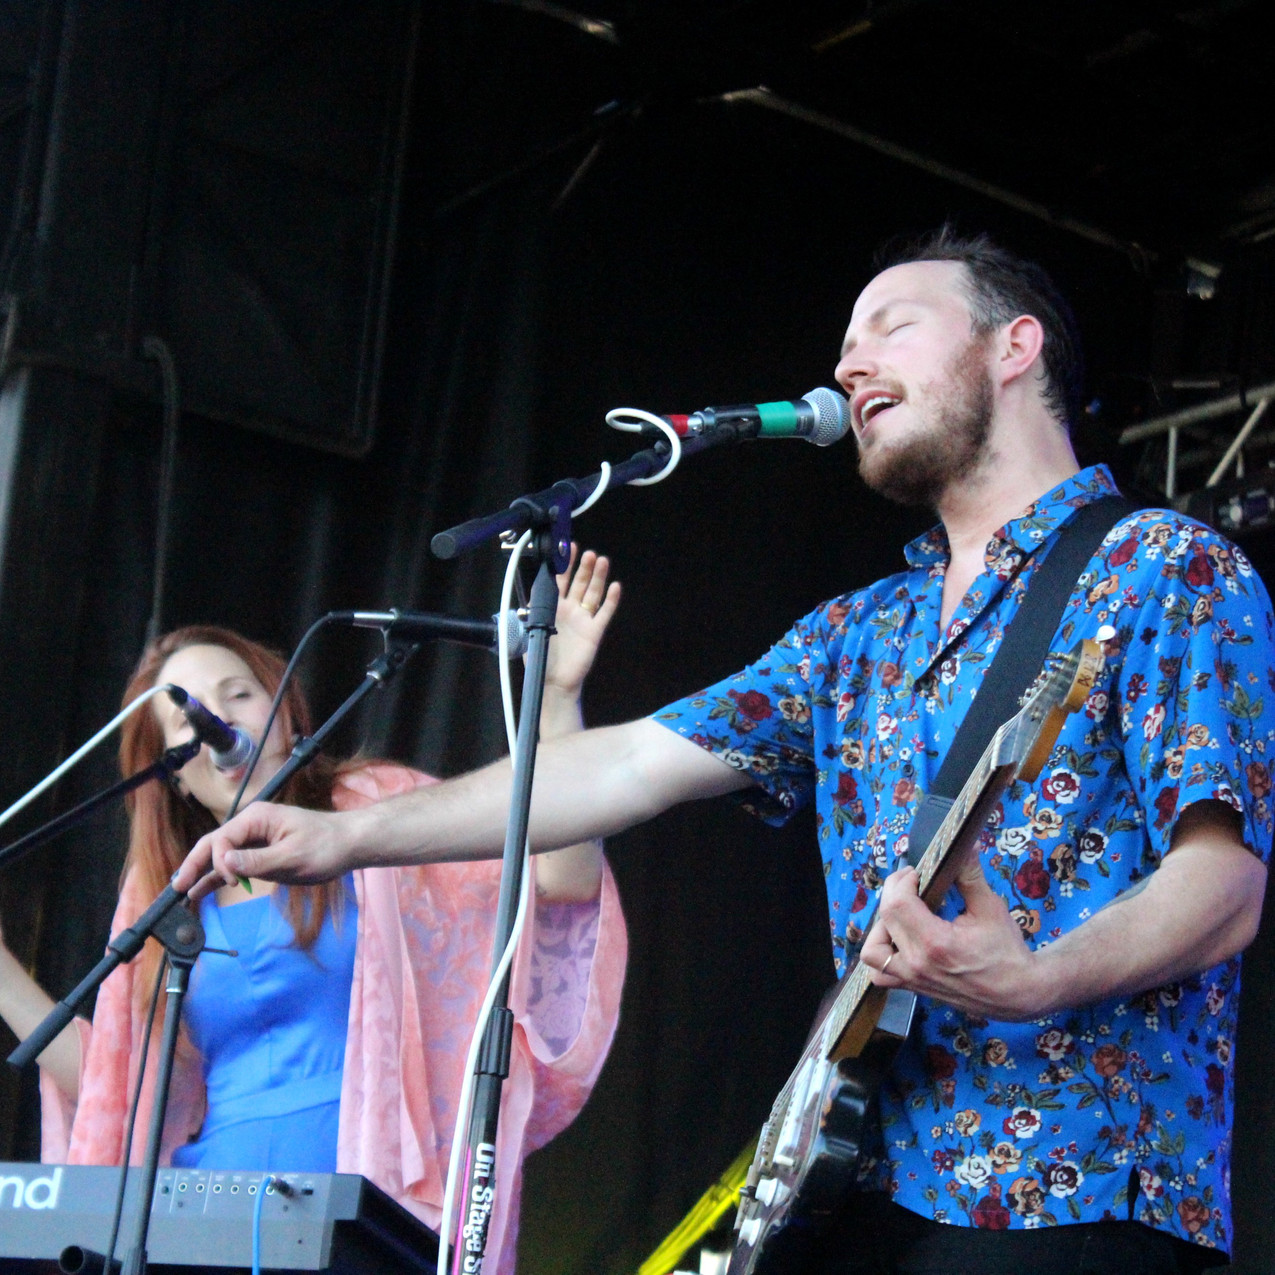 Brooklyn based Savoir Adore onstage at Cayuga Sound